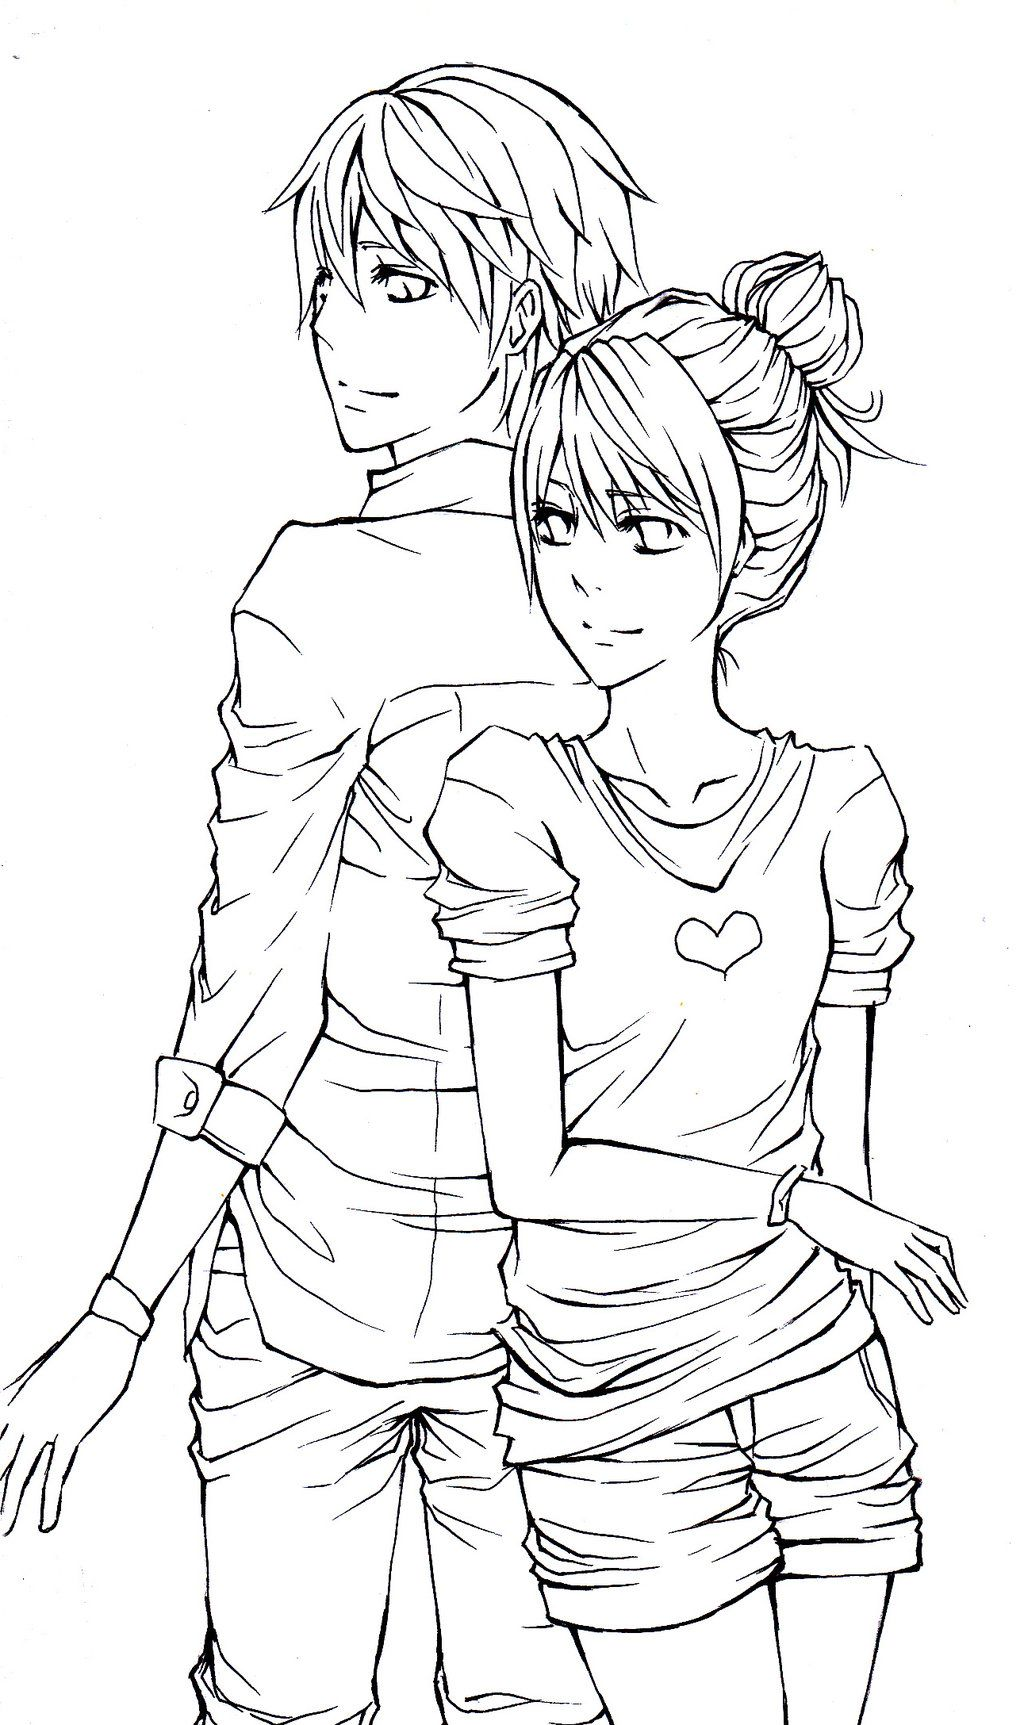 Couple Lineart by misunderstoodpotato.deviantart.com on @DeviantArt ...